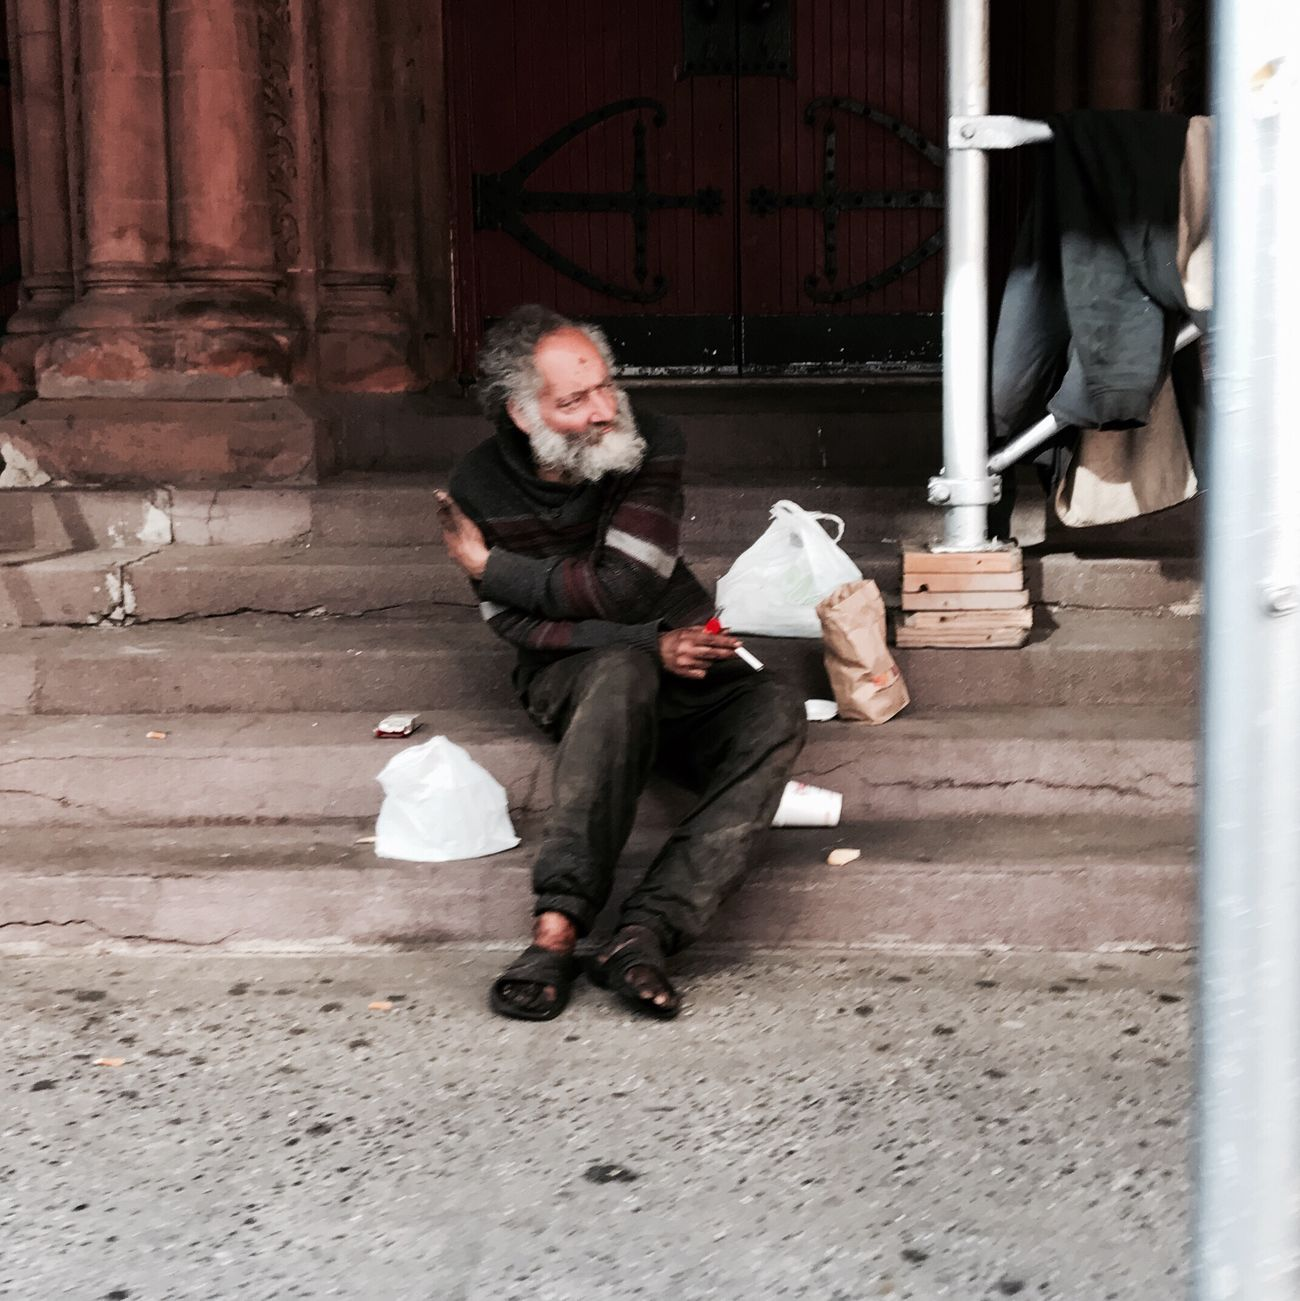 We have weapons of mass destruction we have to address here at home. Poverty is a weapon of mass destruction. Homelessness is a weapon of mass destruction. Unemployment is a weapon of mass destruction -Dennis Kucinich | #homless #manhattan #nyc #spring2017 #streetphotography #people #awareness #timyoungiphoneography #gothamsambassador